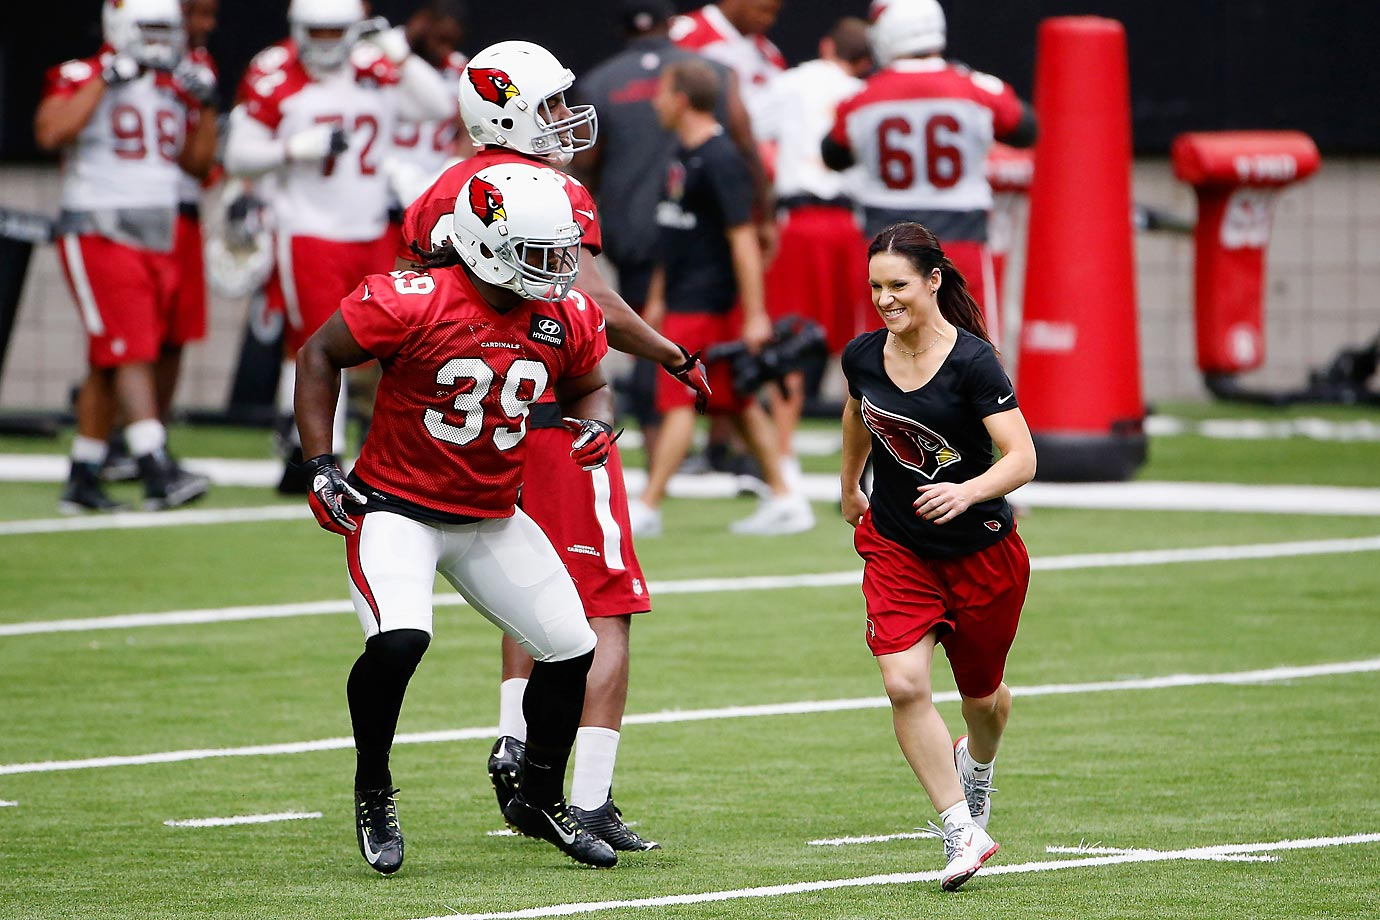 The first woman coach in the NFL, Jen Welter is helping to direct the Arizona Cardinals linebackers during training camp. Here's a look at Welter in action.